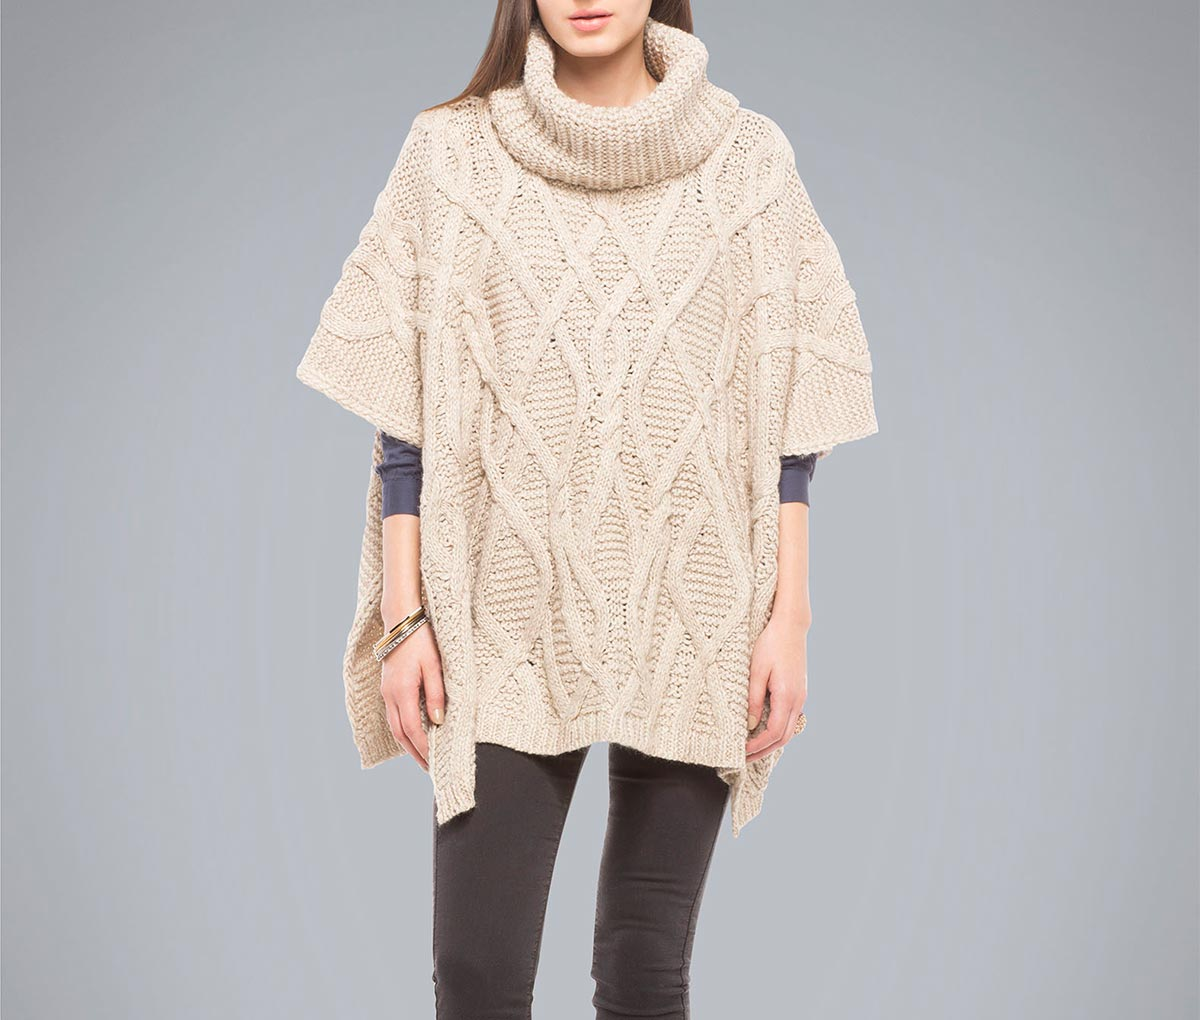 falabella-ponchos-sweaters-fashion-diaries-7